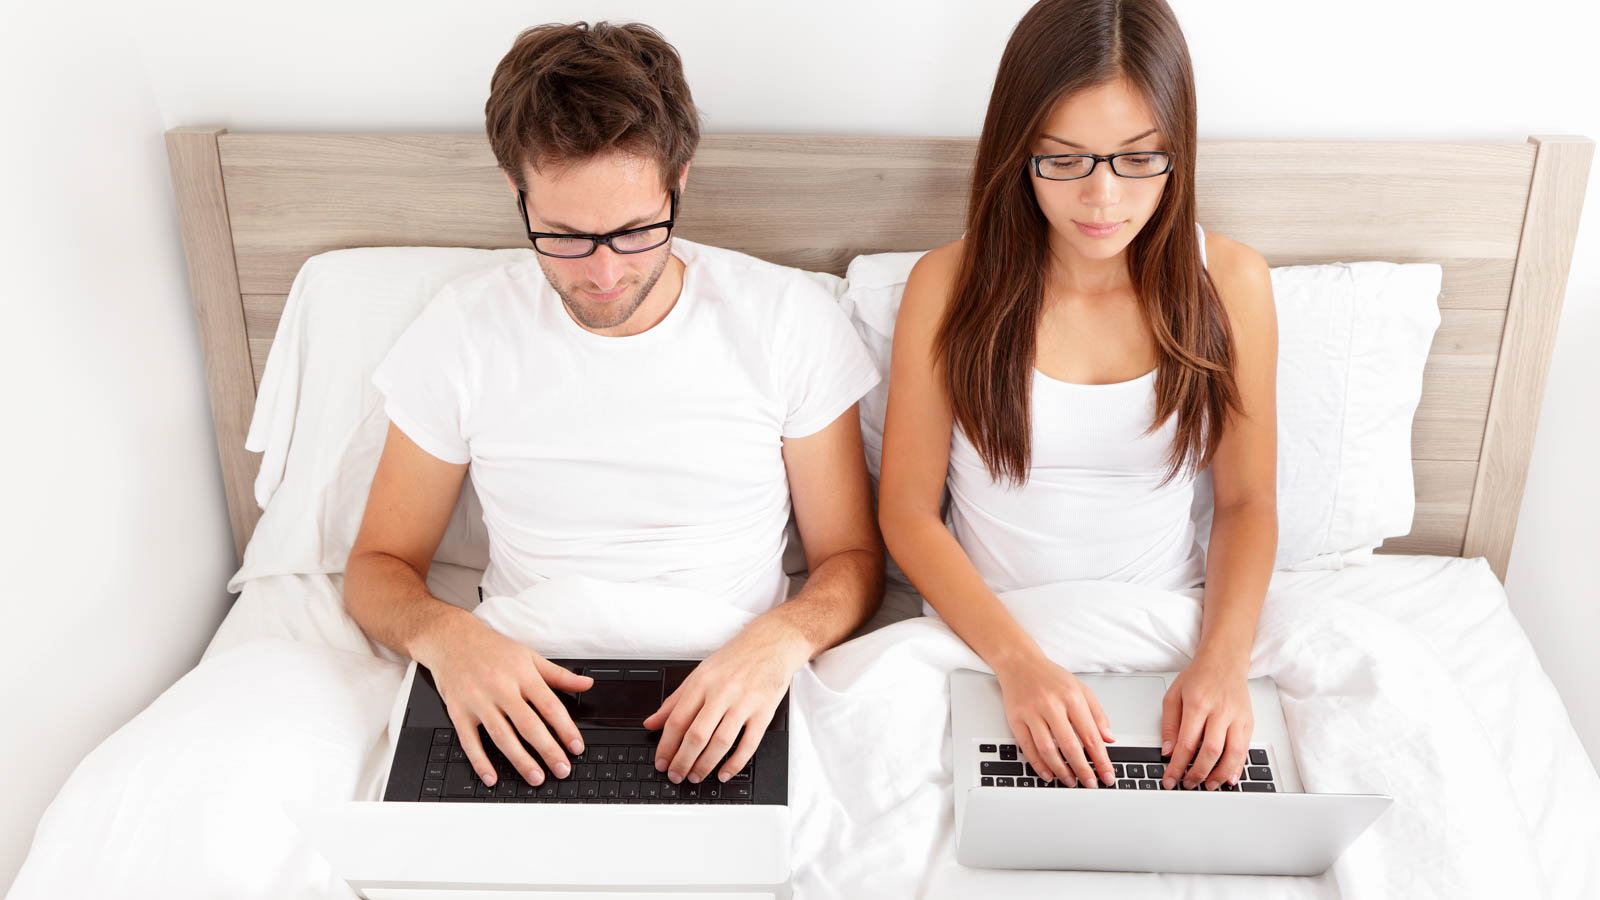 couple using laptops in bed